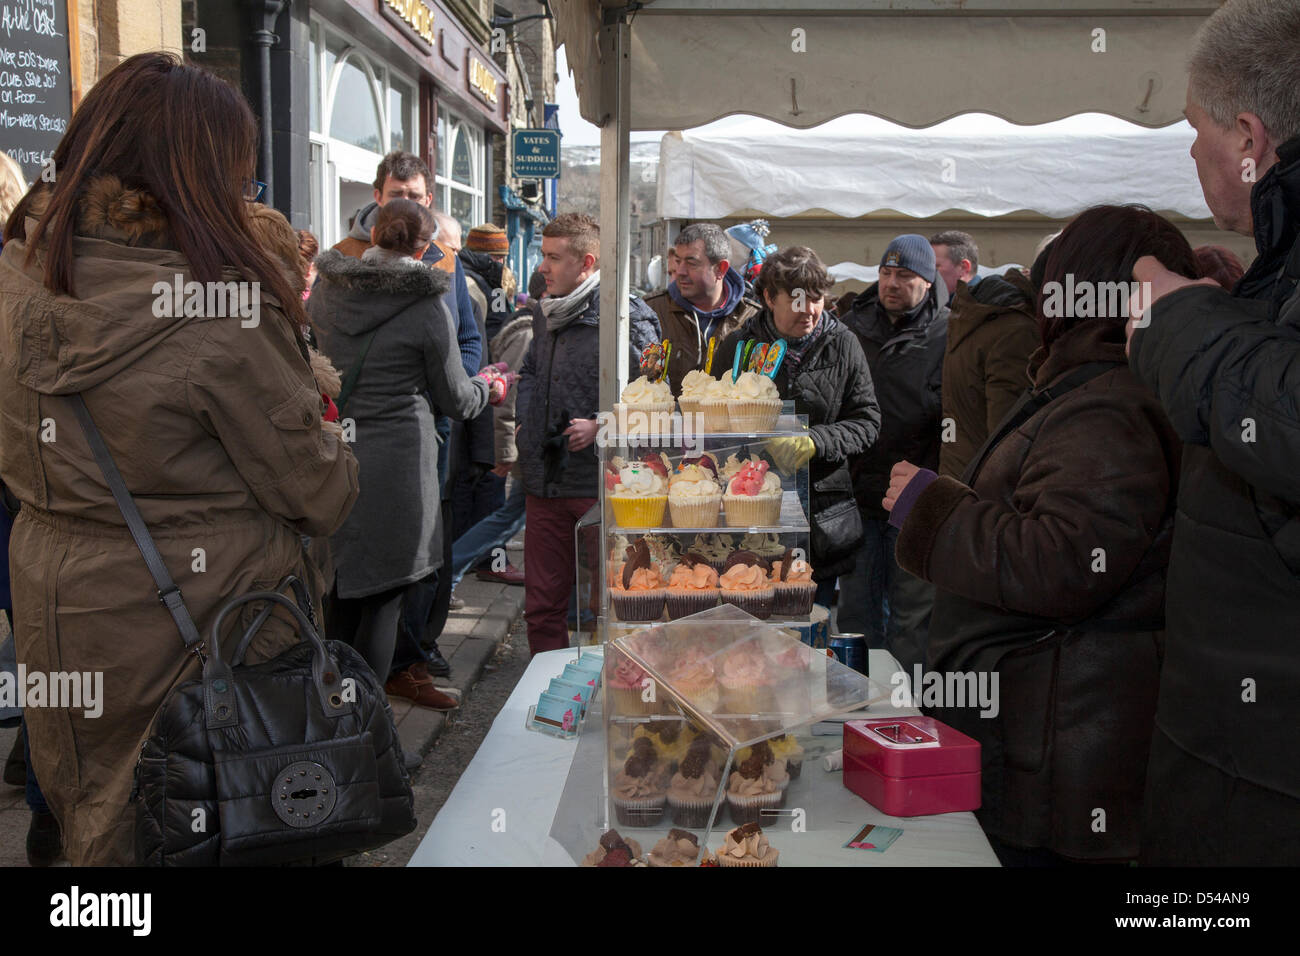 Ramsbottom, Lancashire, UK Sunday 24th March, 2013. Chocolate Stall at the 5th Annual Chocolate Festival, held in - Stock Image